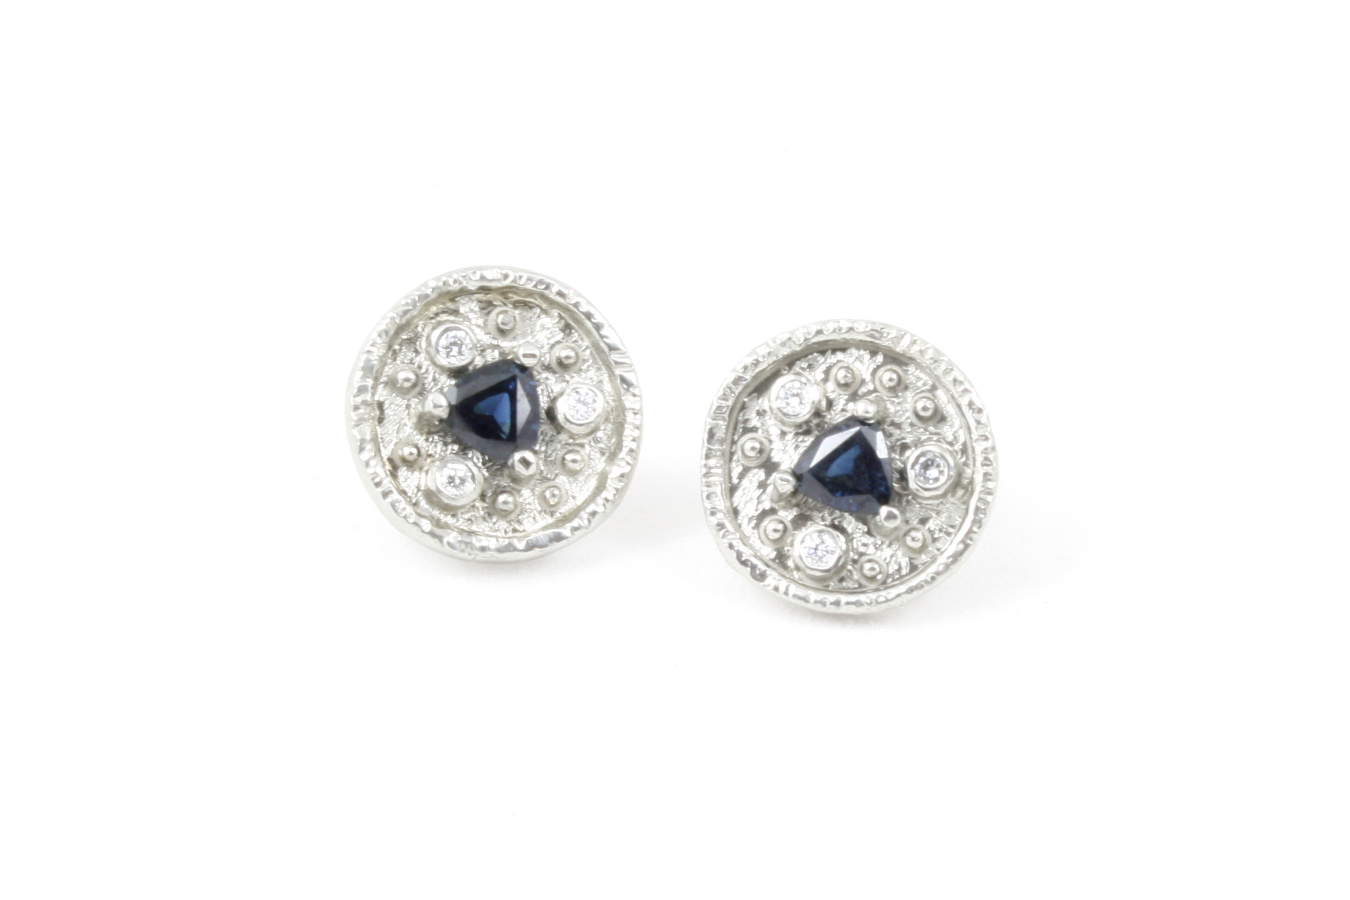 Trillion Cut Blue Shire With Three Diamonds In Each Earring These Little Studs Pack A Punch Of Sparkle 1 00 Ctw 09 Diamond